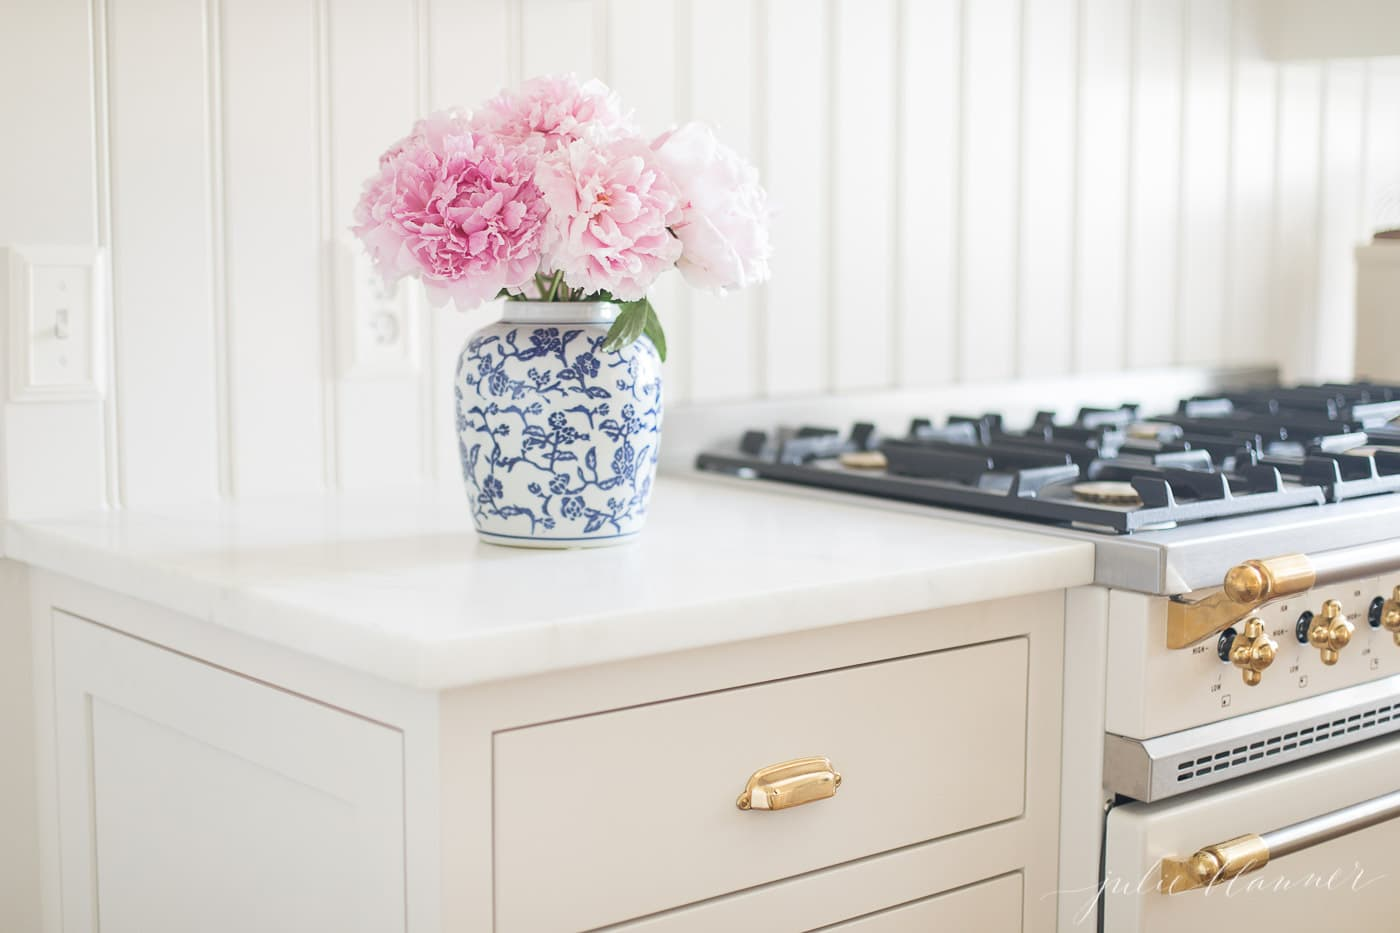 pink peonies in a blue and white vase by a range in a white kitchen.